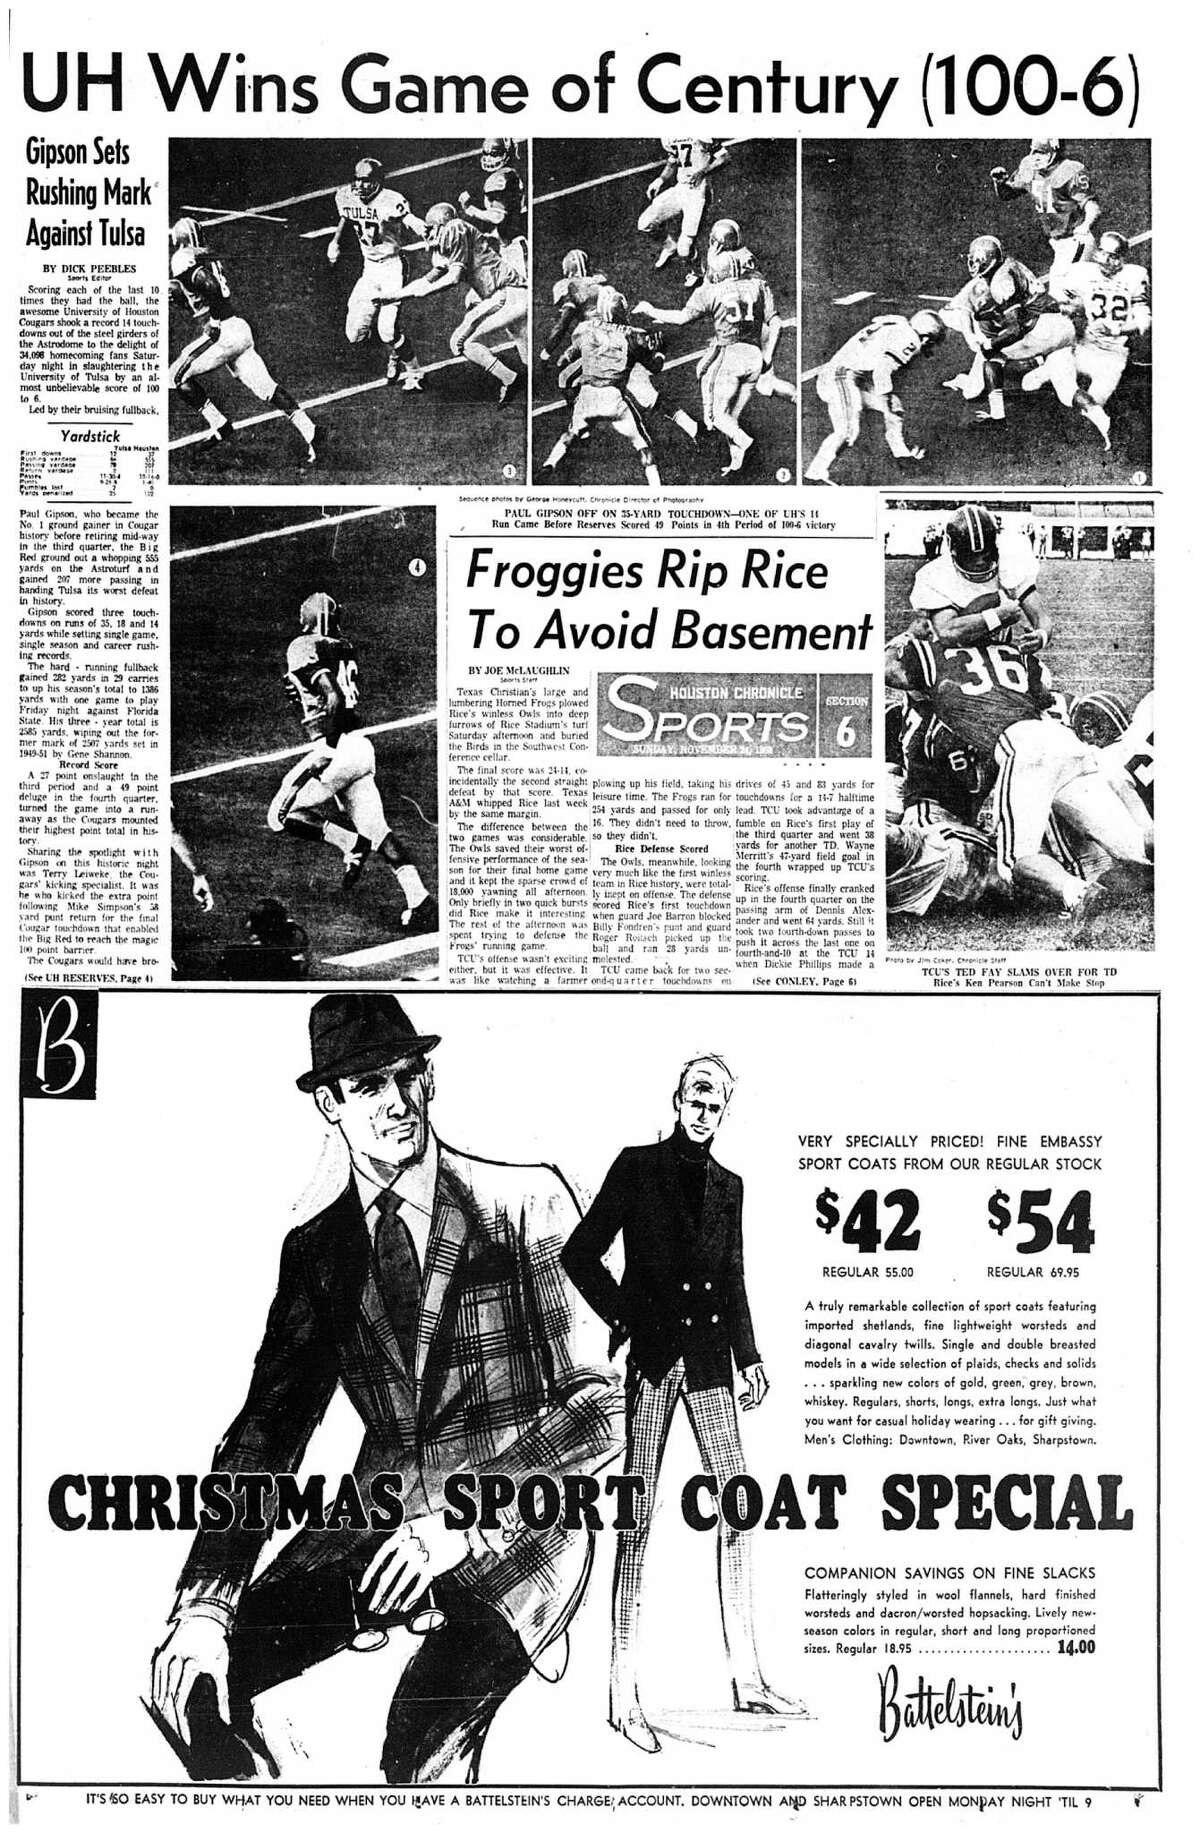 Houston Chronicle inside page (HISTORIC) Â?- November 24, 1968 - section 6, page 1. UH Wins Game of Century (100-6) Gipson Sets Rushing Mark Against Tulsa